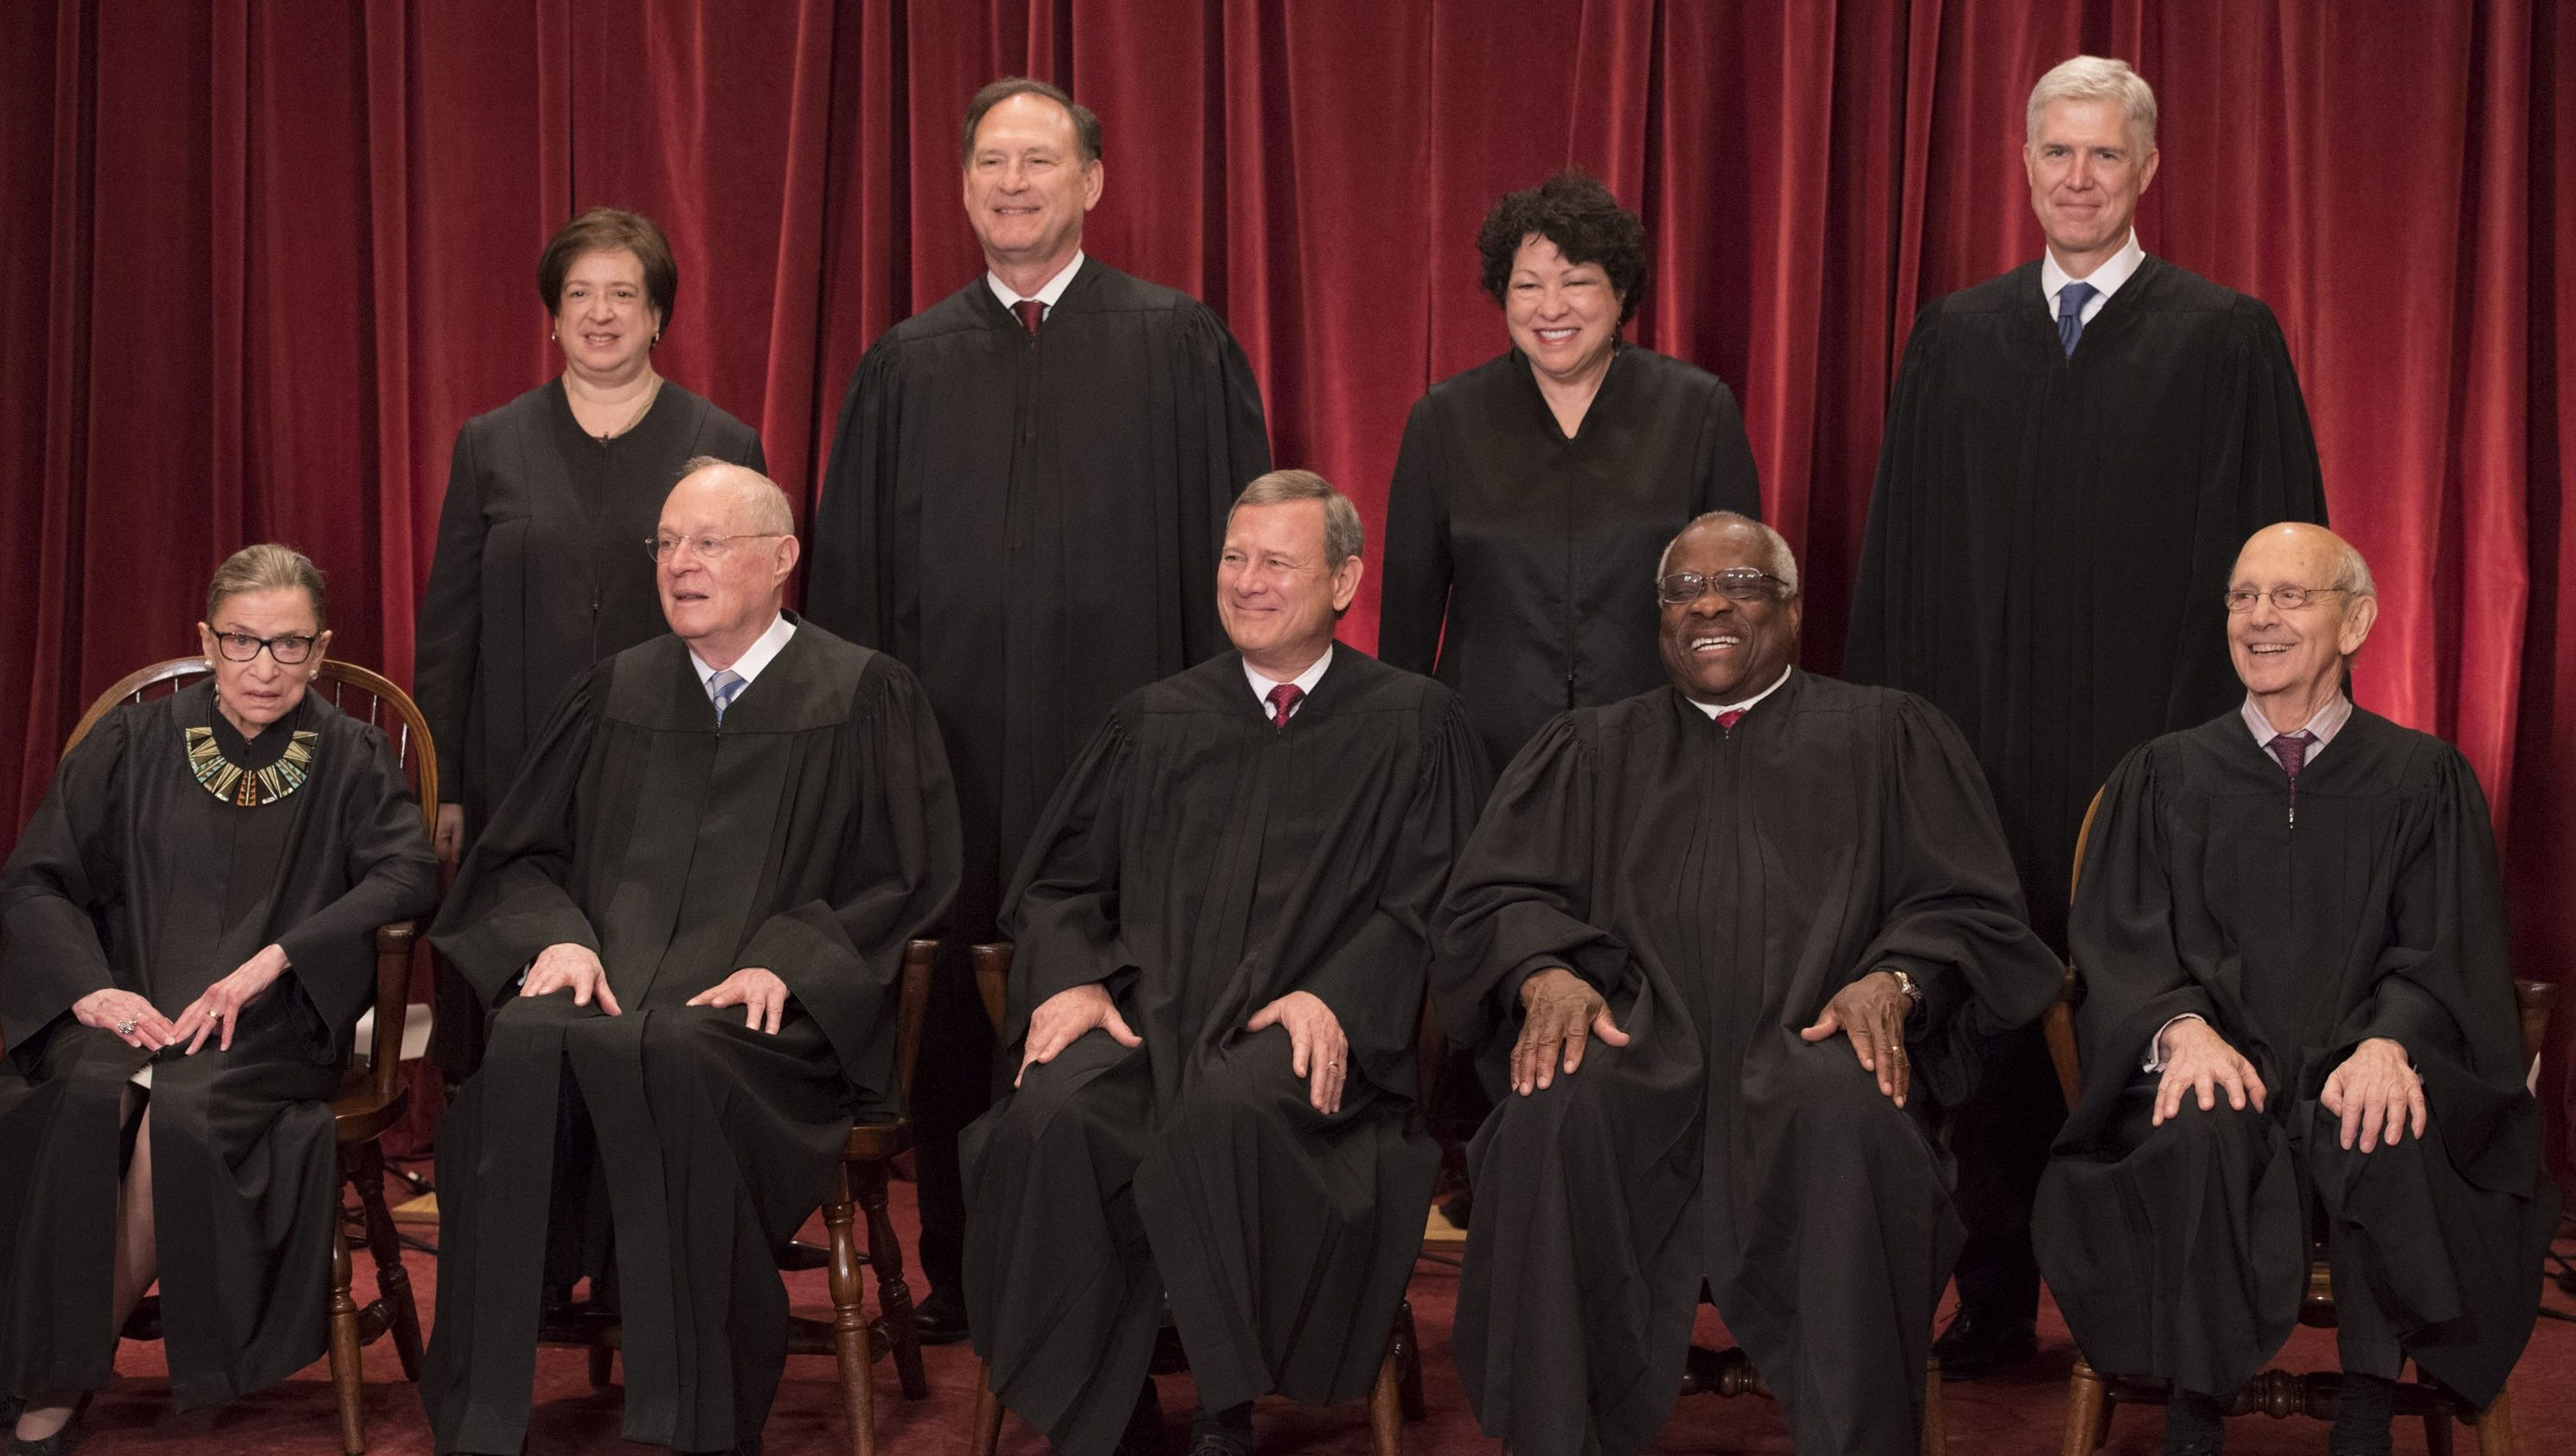 Check out the Supreme Court Class of 2017